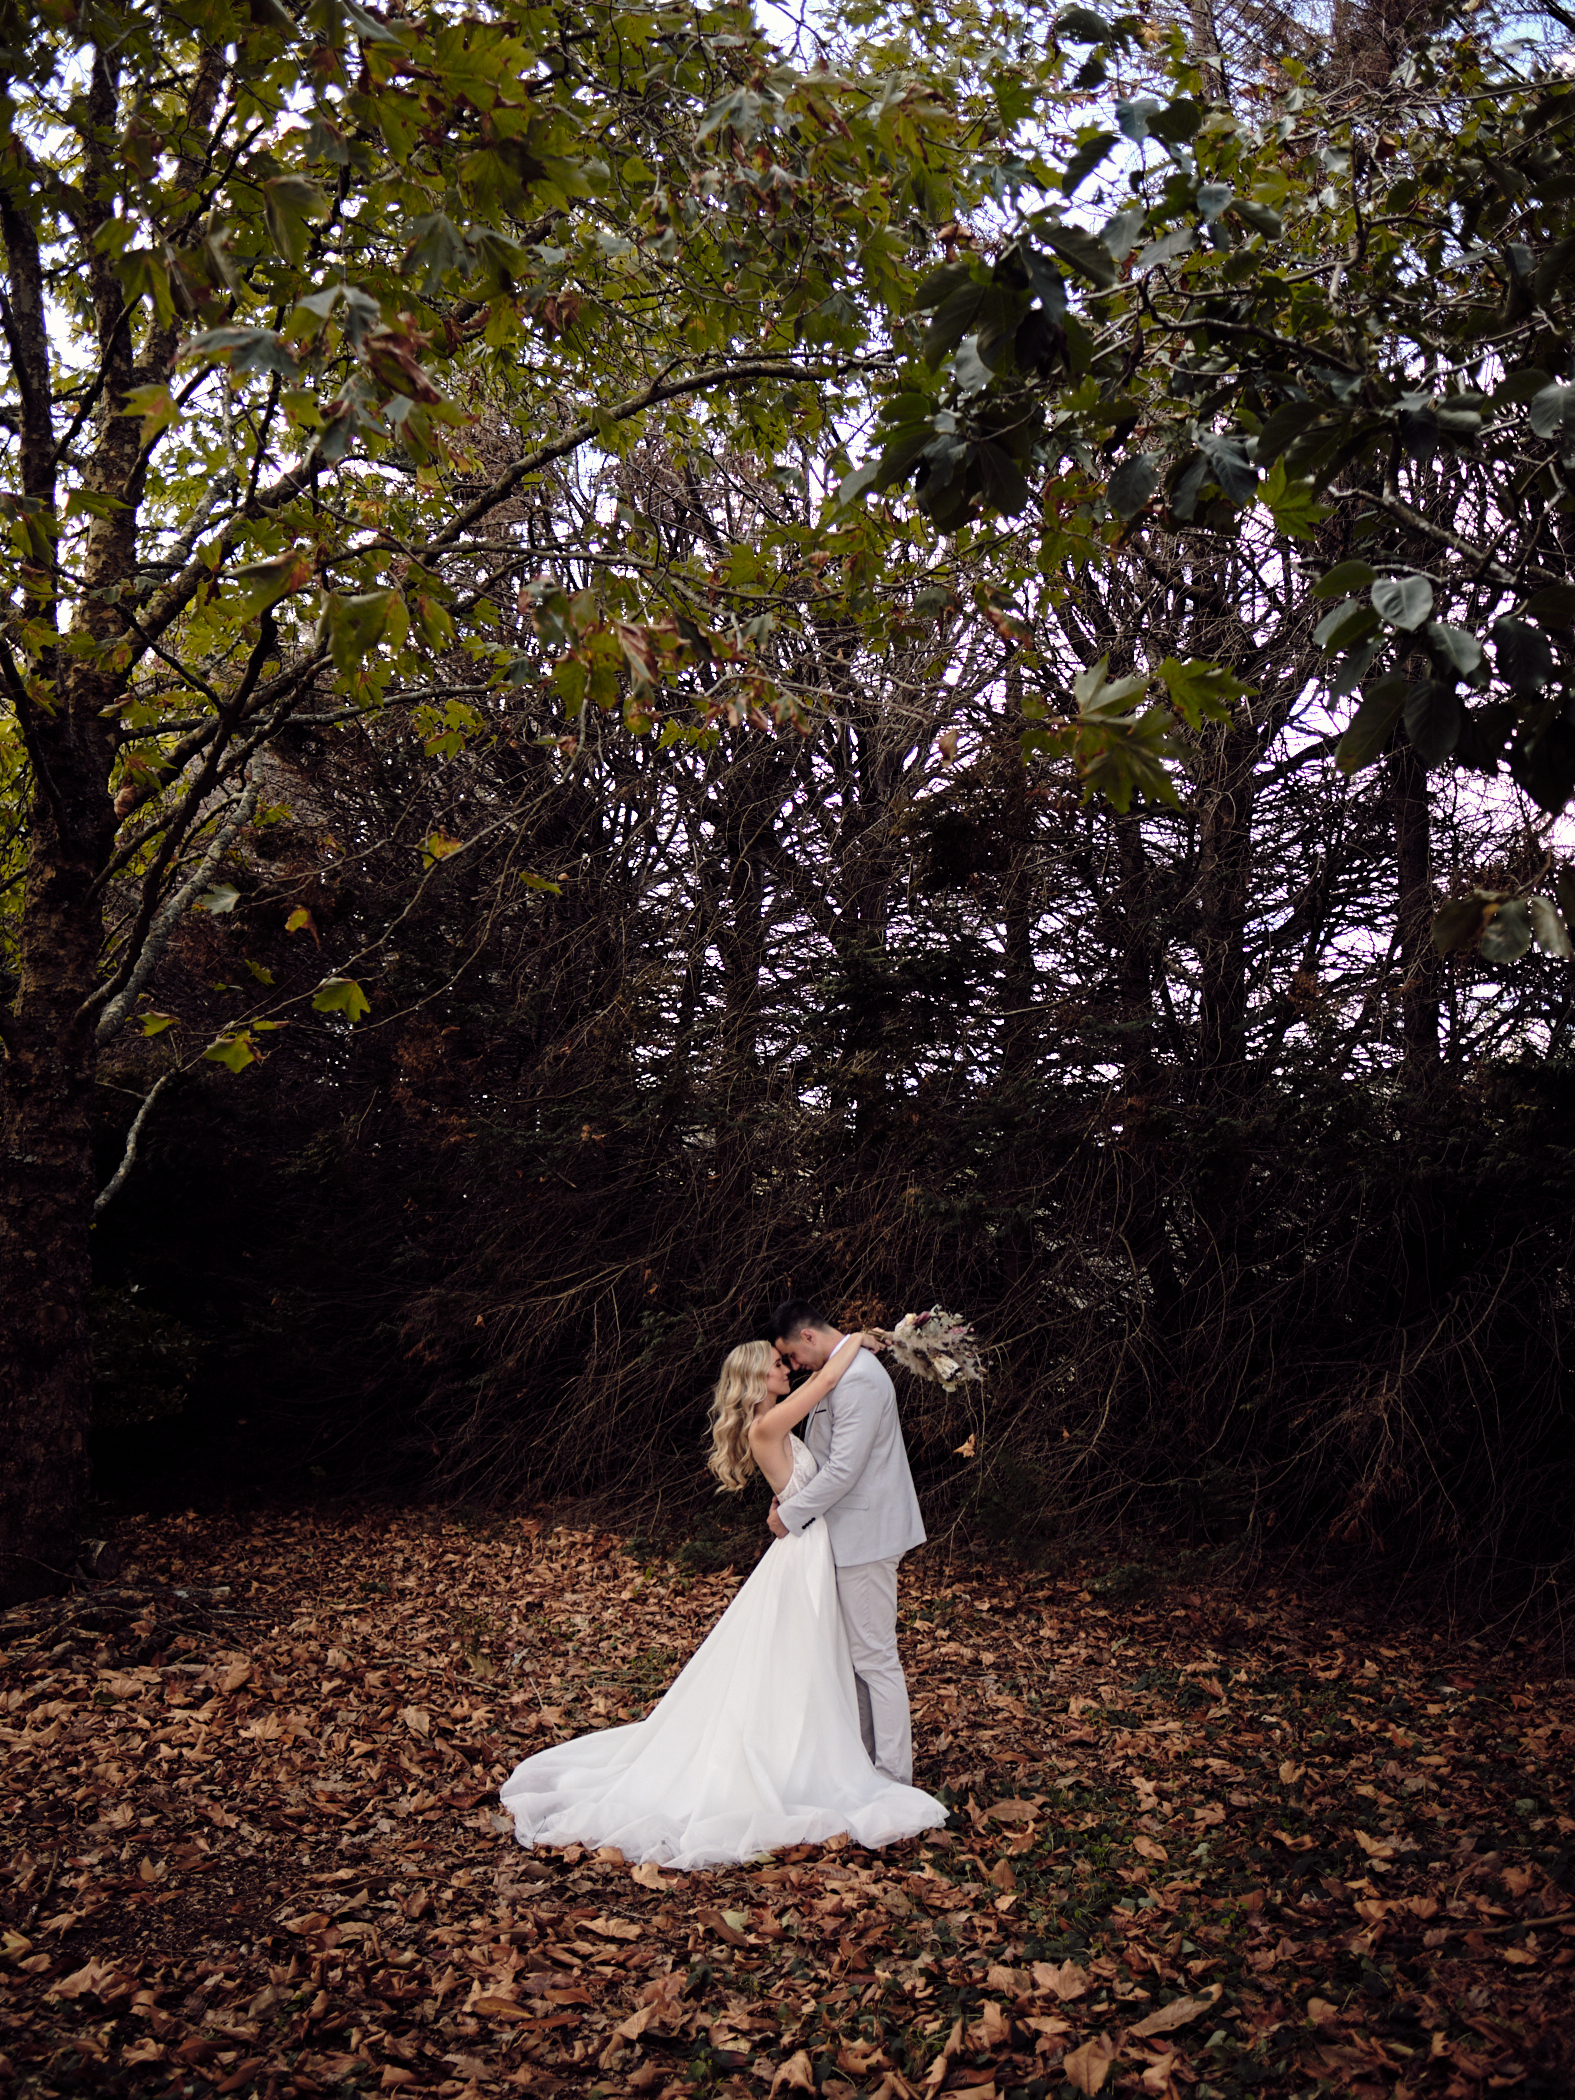 Real wedding photography